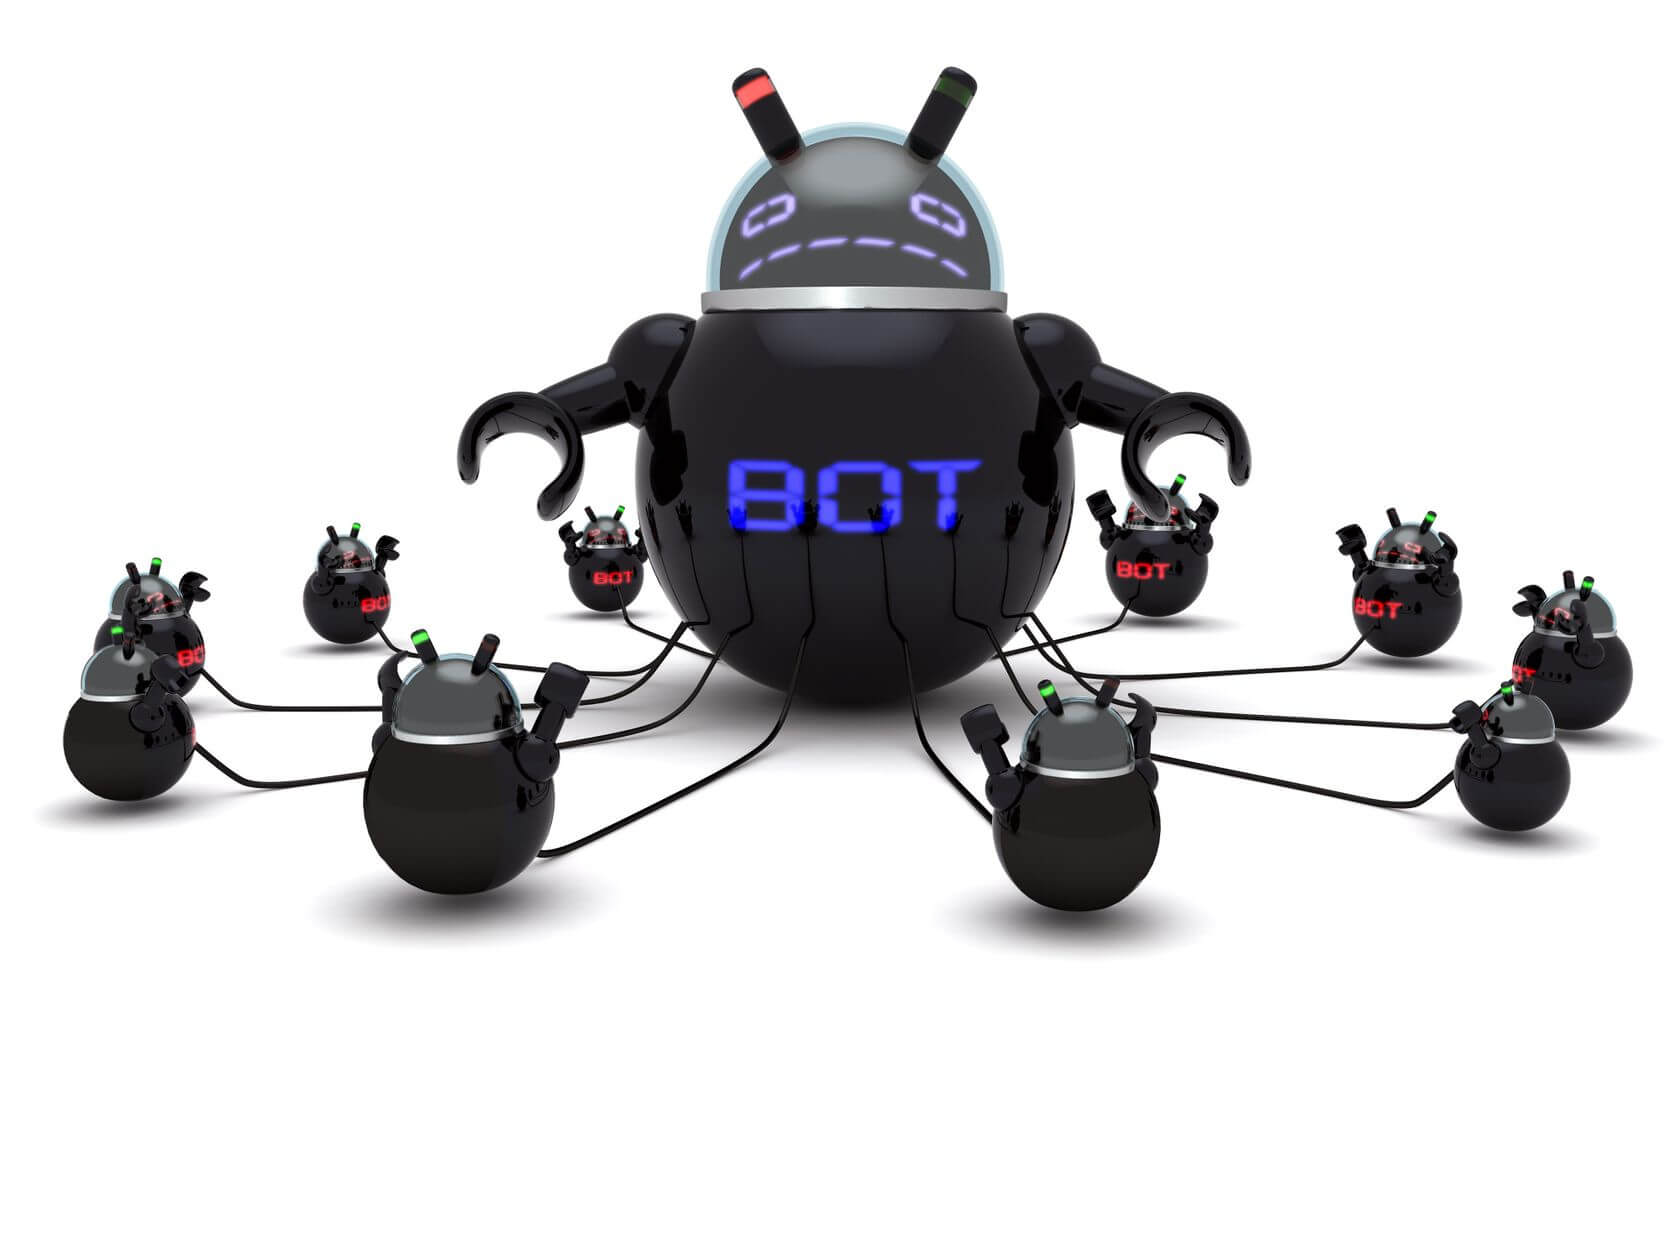 Cryptocurrency mining botnet spreads to over 5000 Android devices in 24 hours